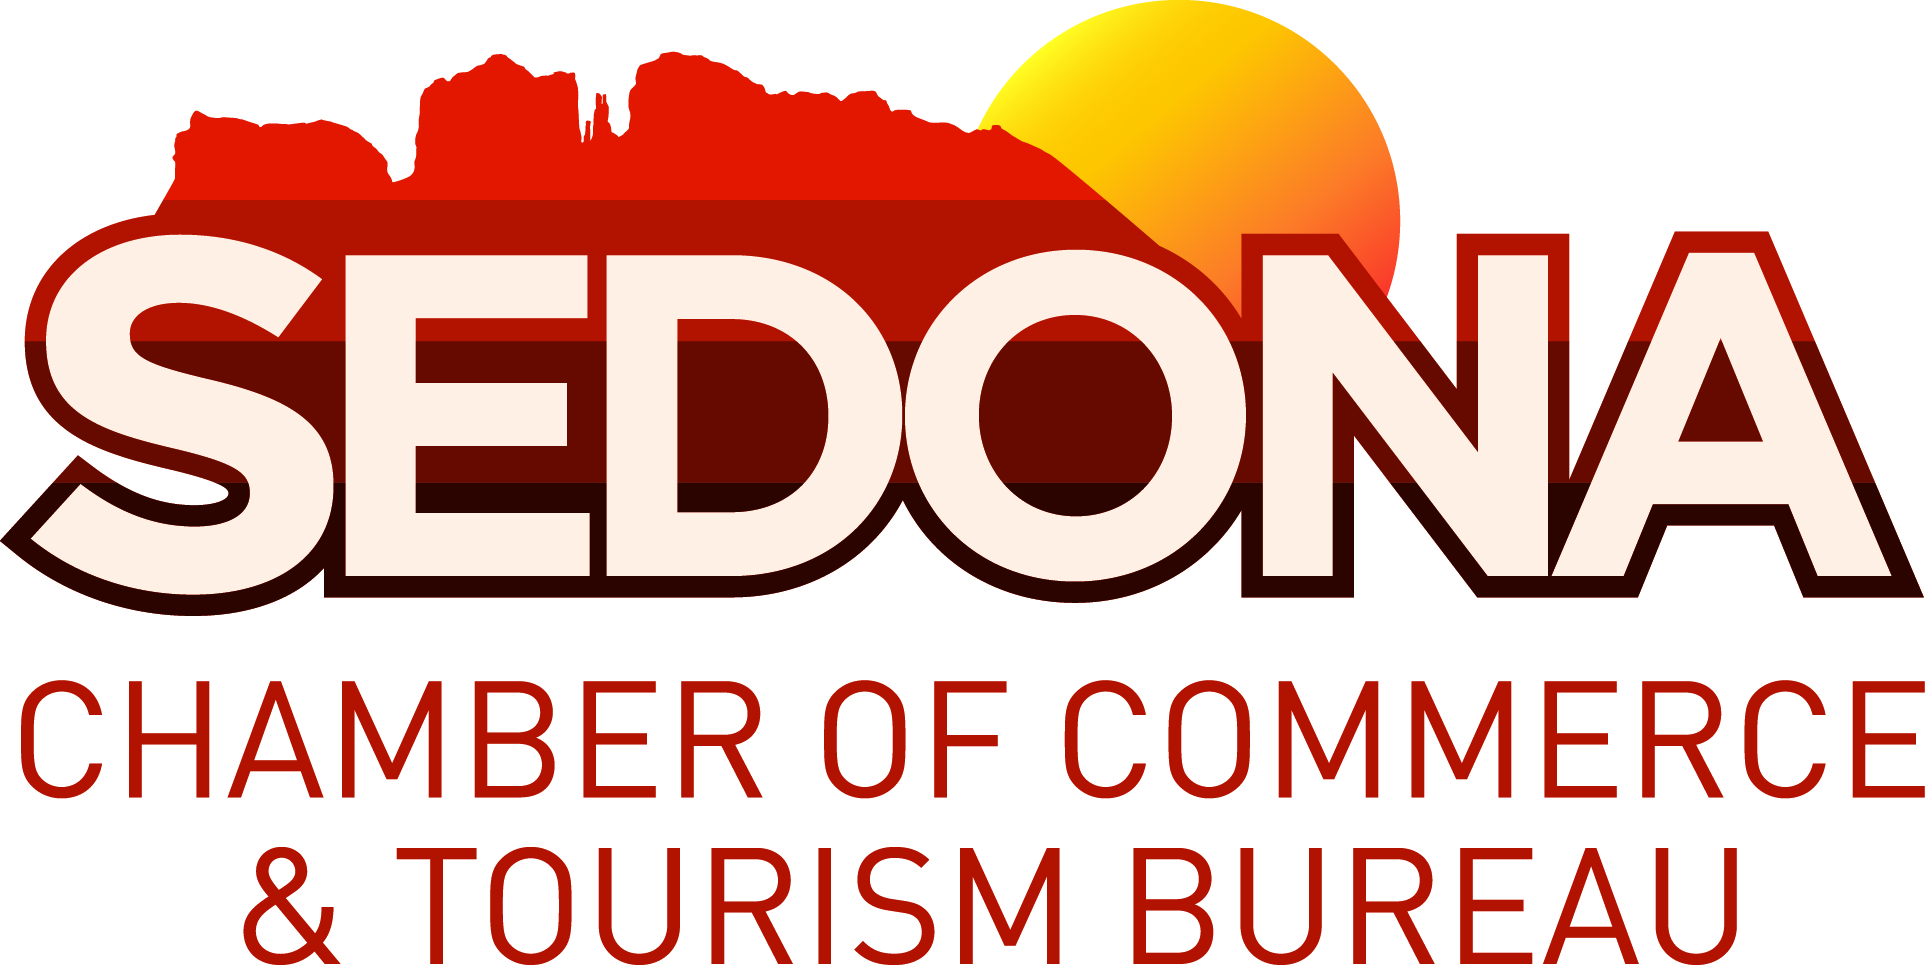 Sedona chamber sedona coupons sedona chamber sedona chamber fandeluxe Choice Image